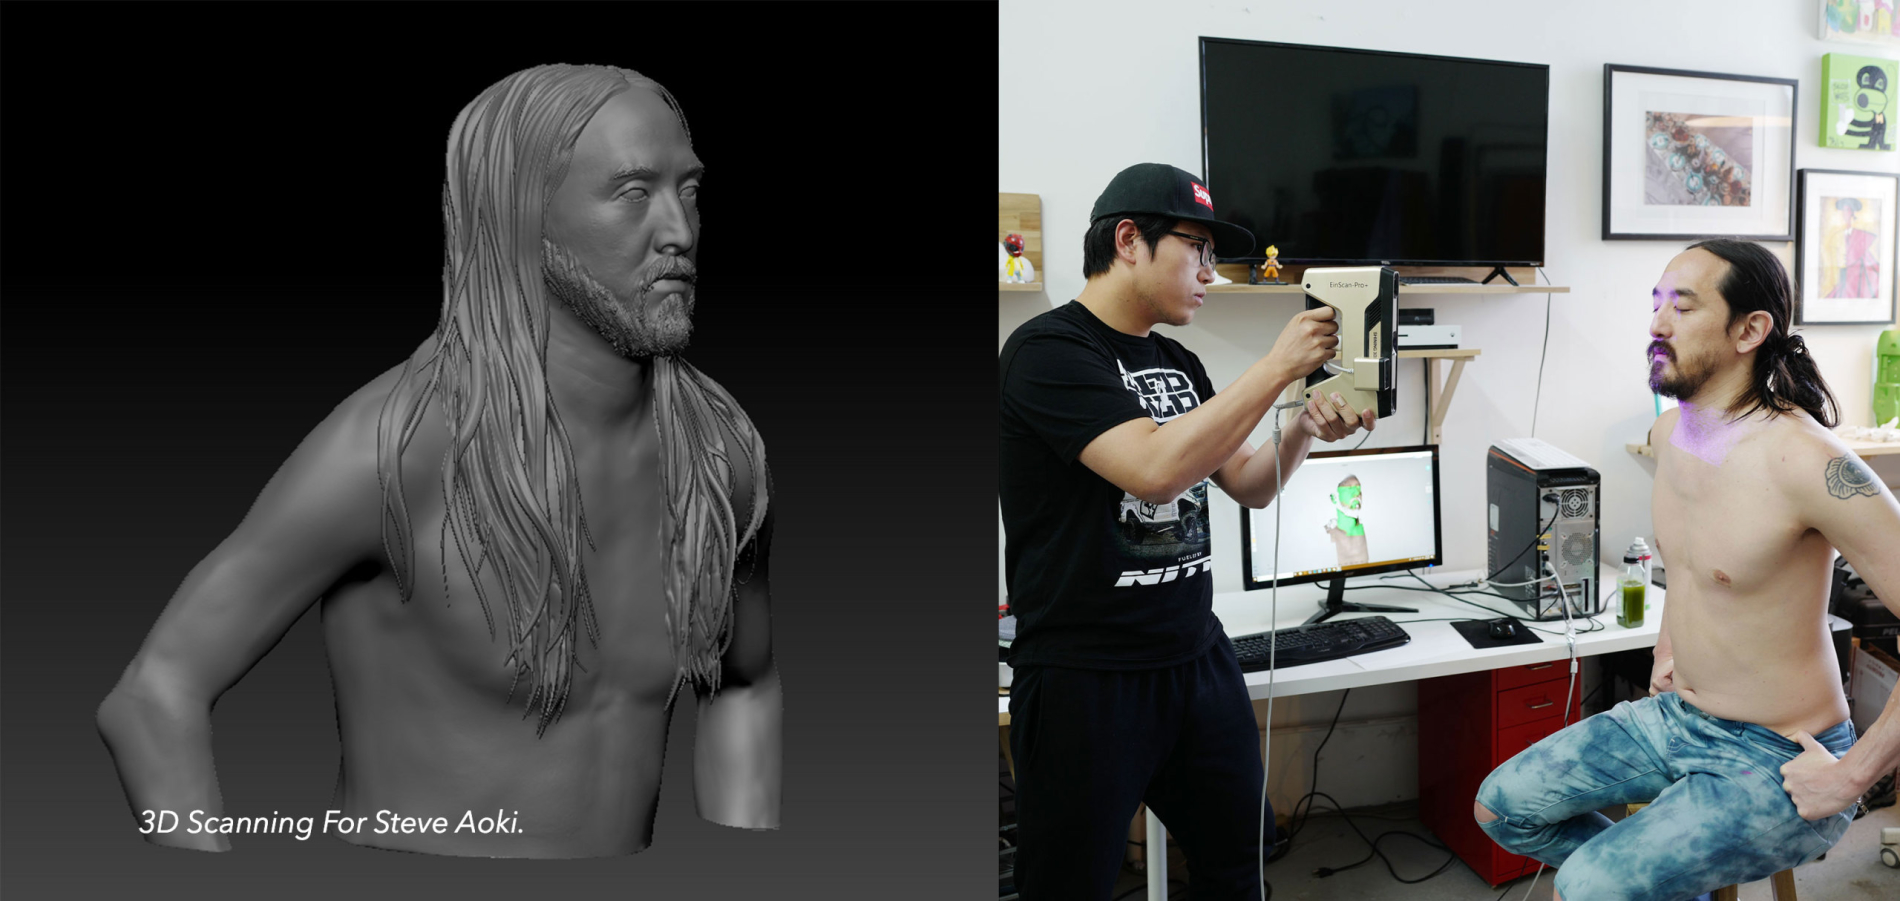 3D scanning steve aoki for his music video